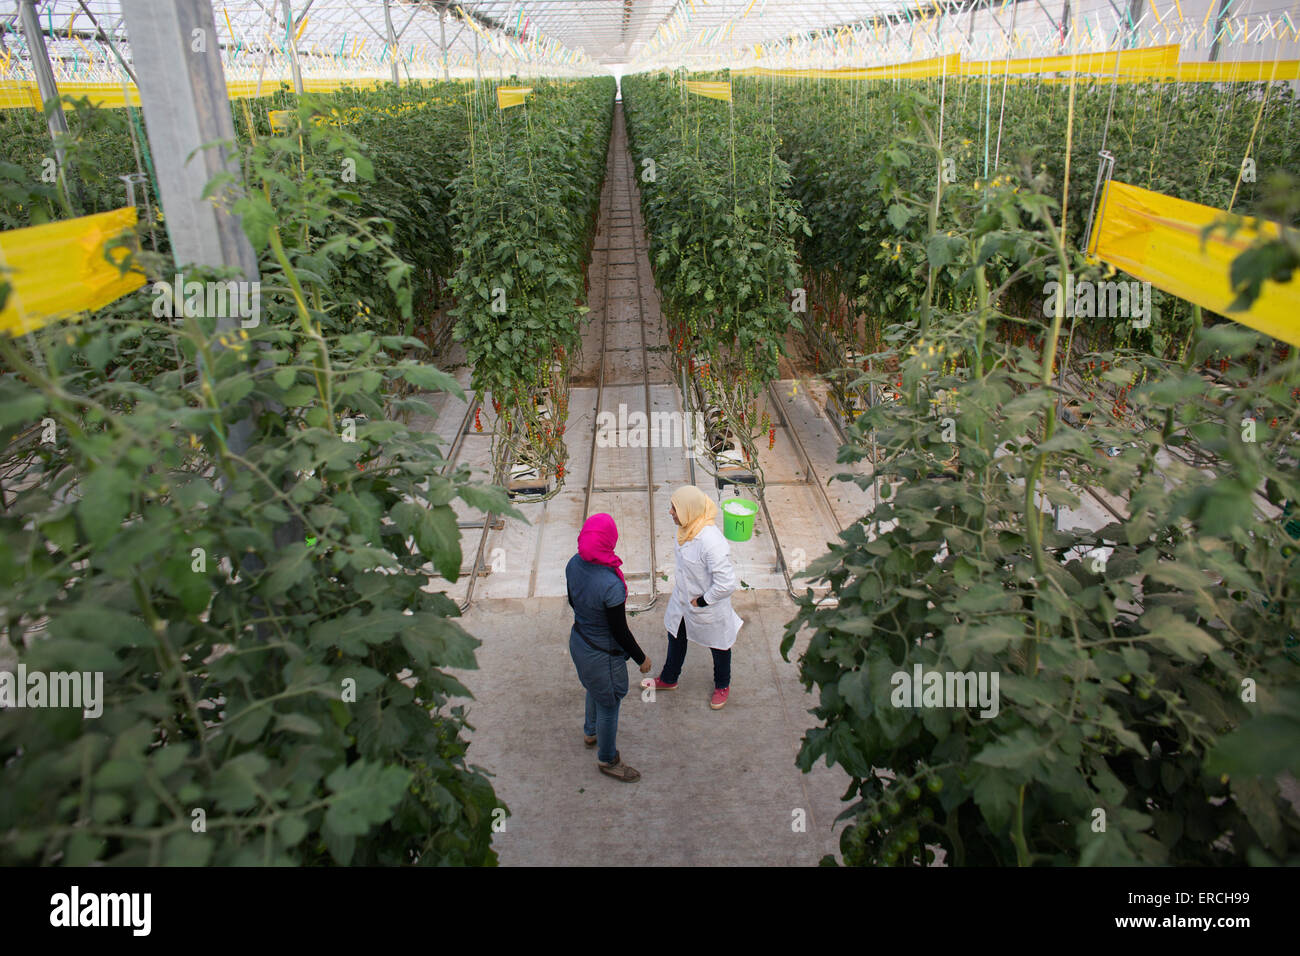 Dutch greenhouses 'Desert Joy' in the desert near Gabes, Tunisia. - Stock Image